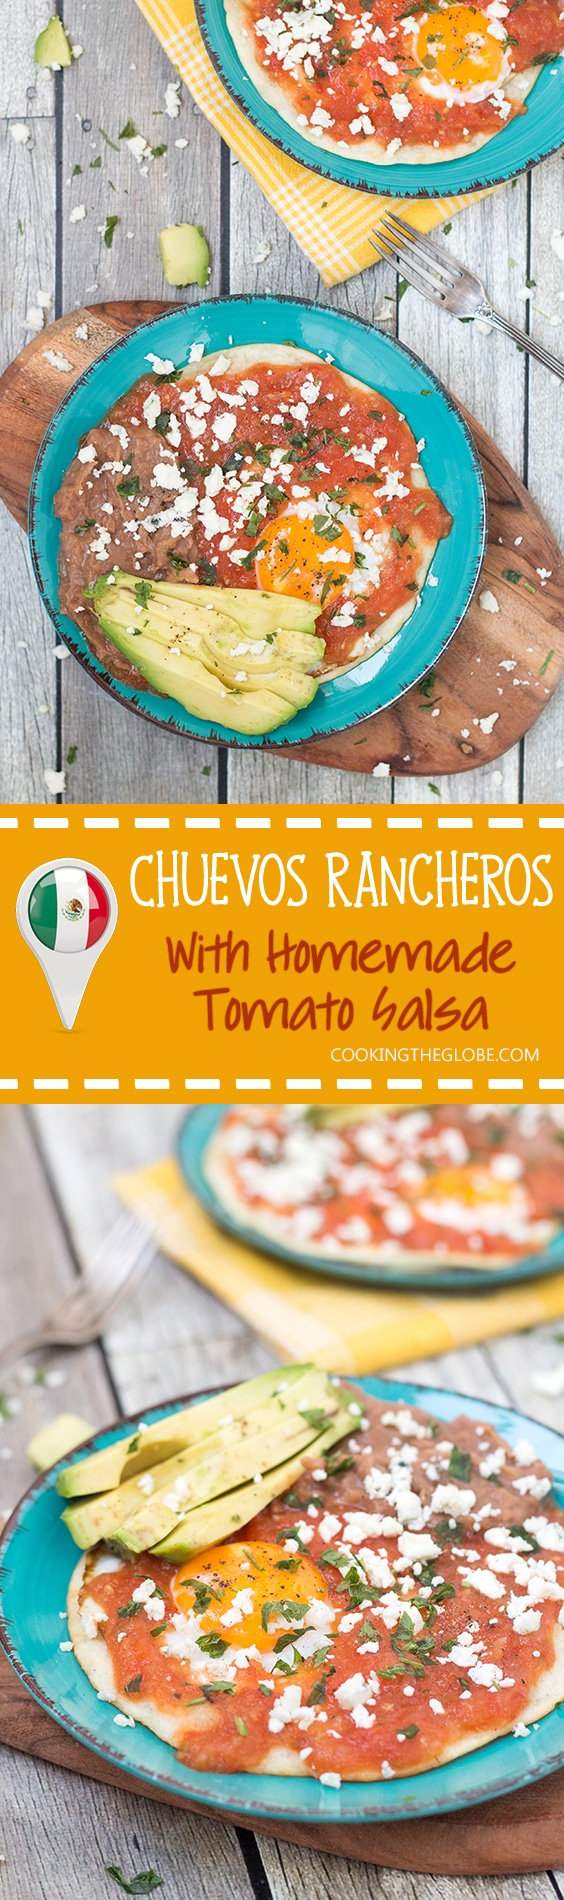 There is nothing better than Mexican traditional Huevos Rancheros in the morning. Try this easy and delicious recipe with homemade salsa!